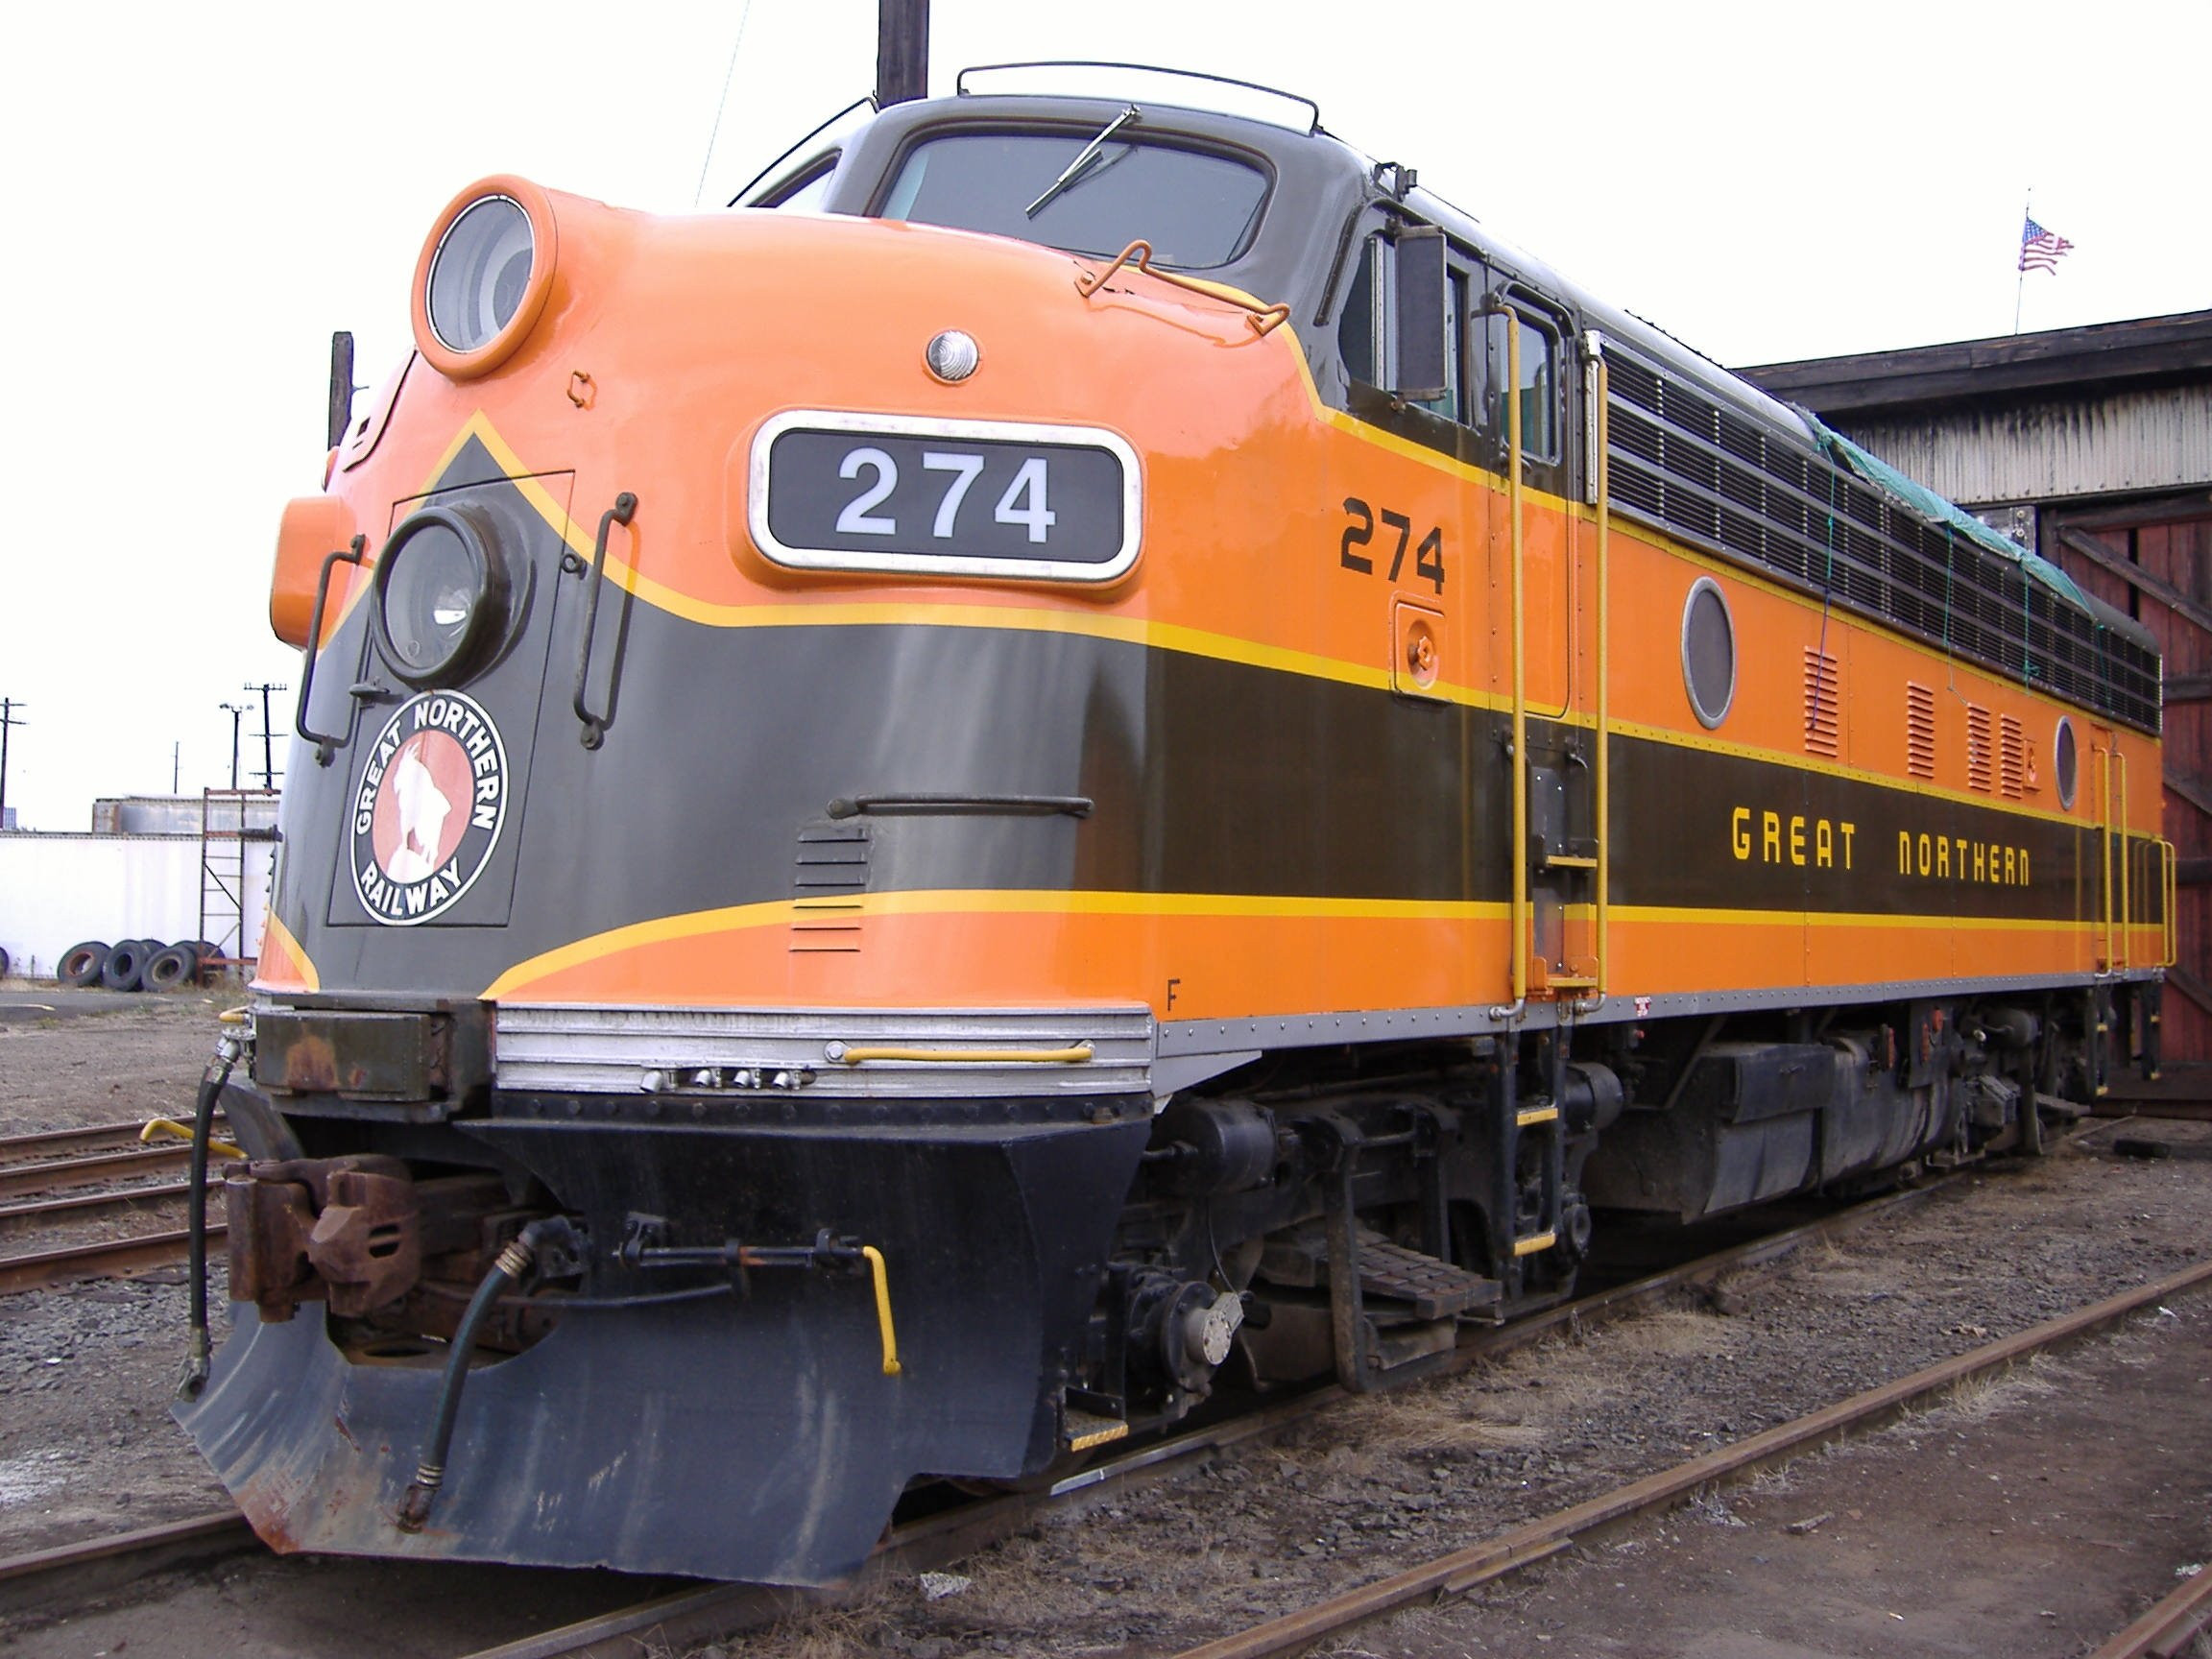 projet vedette b25 mitchell WW2 bombardier - Page 2 Locomotive_Great_Northern_Railway_%28US%29